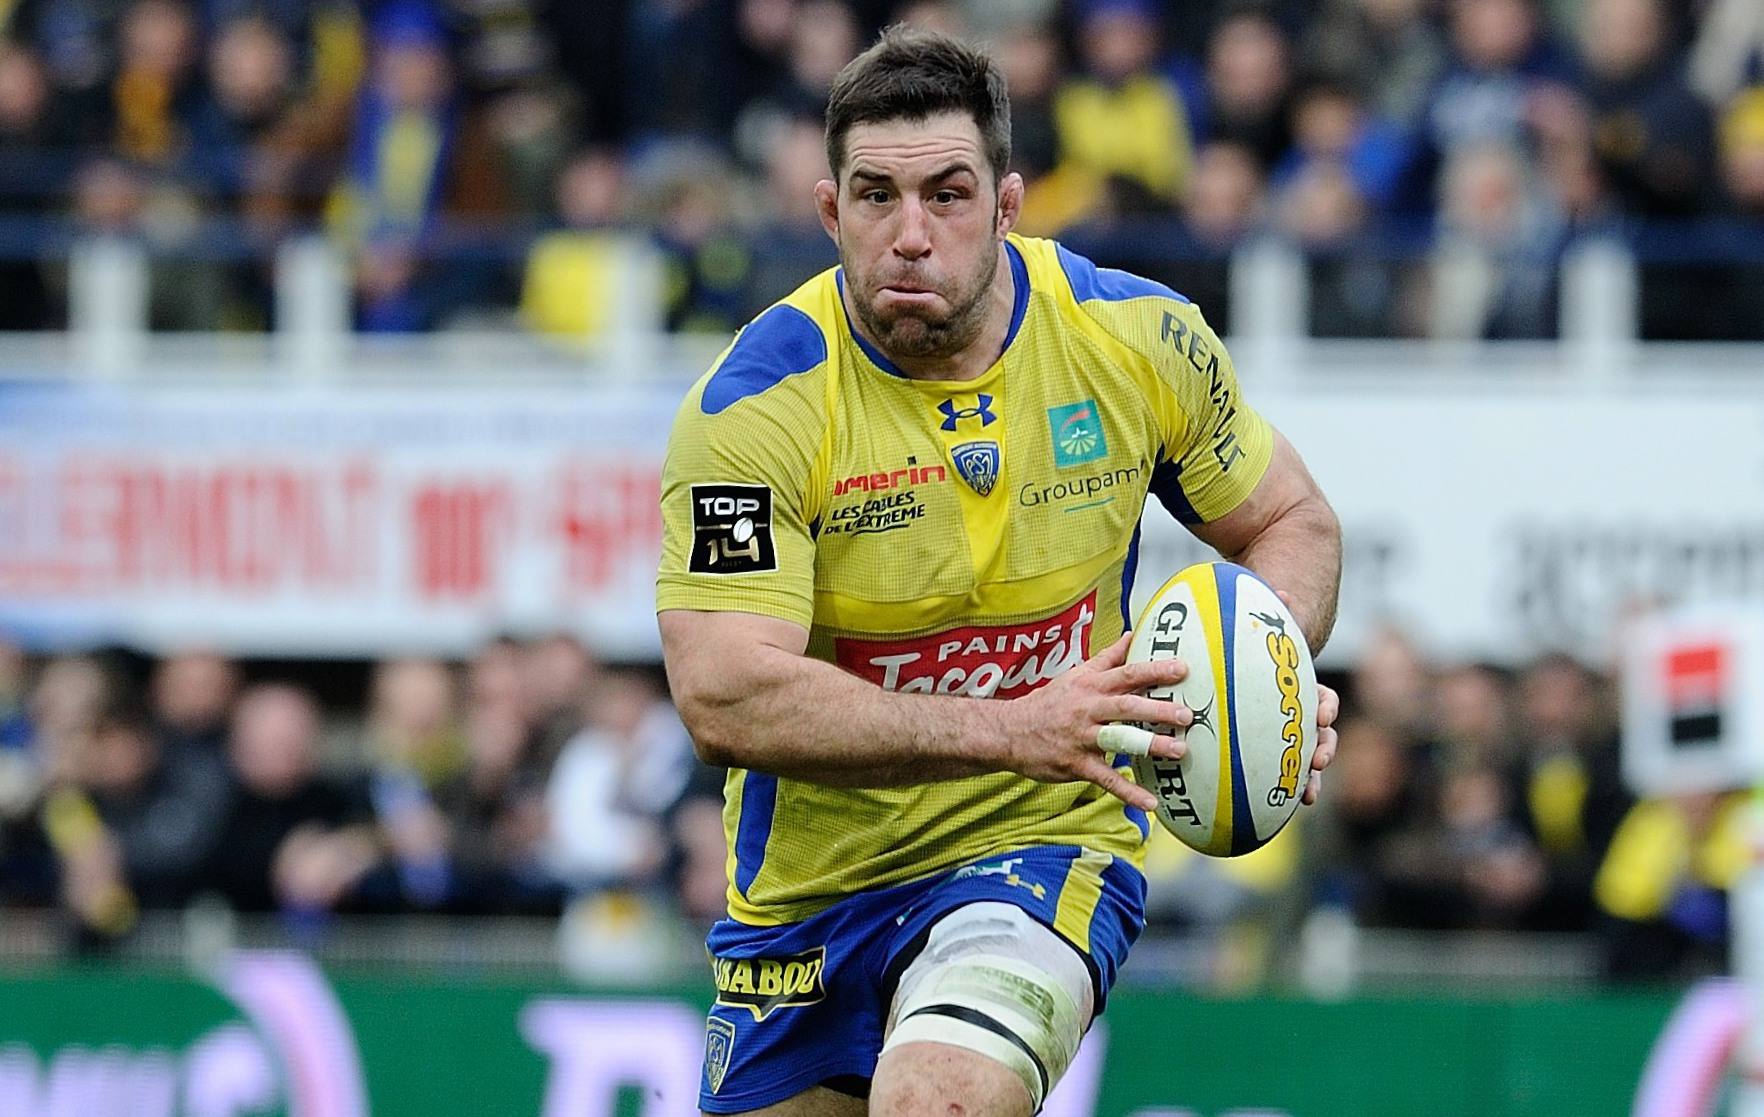 commotions c r brales jamie cudmore porte plainte contre x top 14 rugby. Black Bedroom Furniture Sets. Home Design Ideas